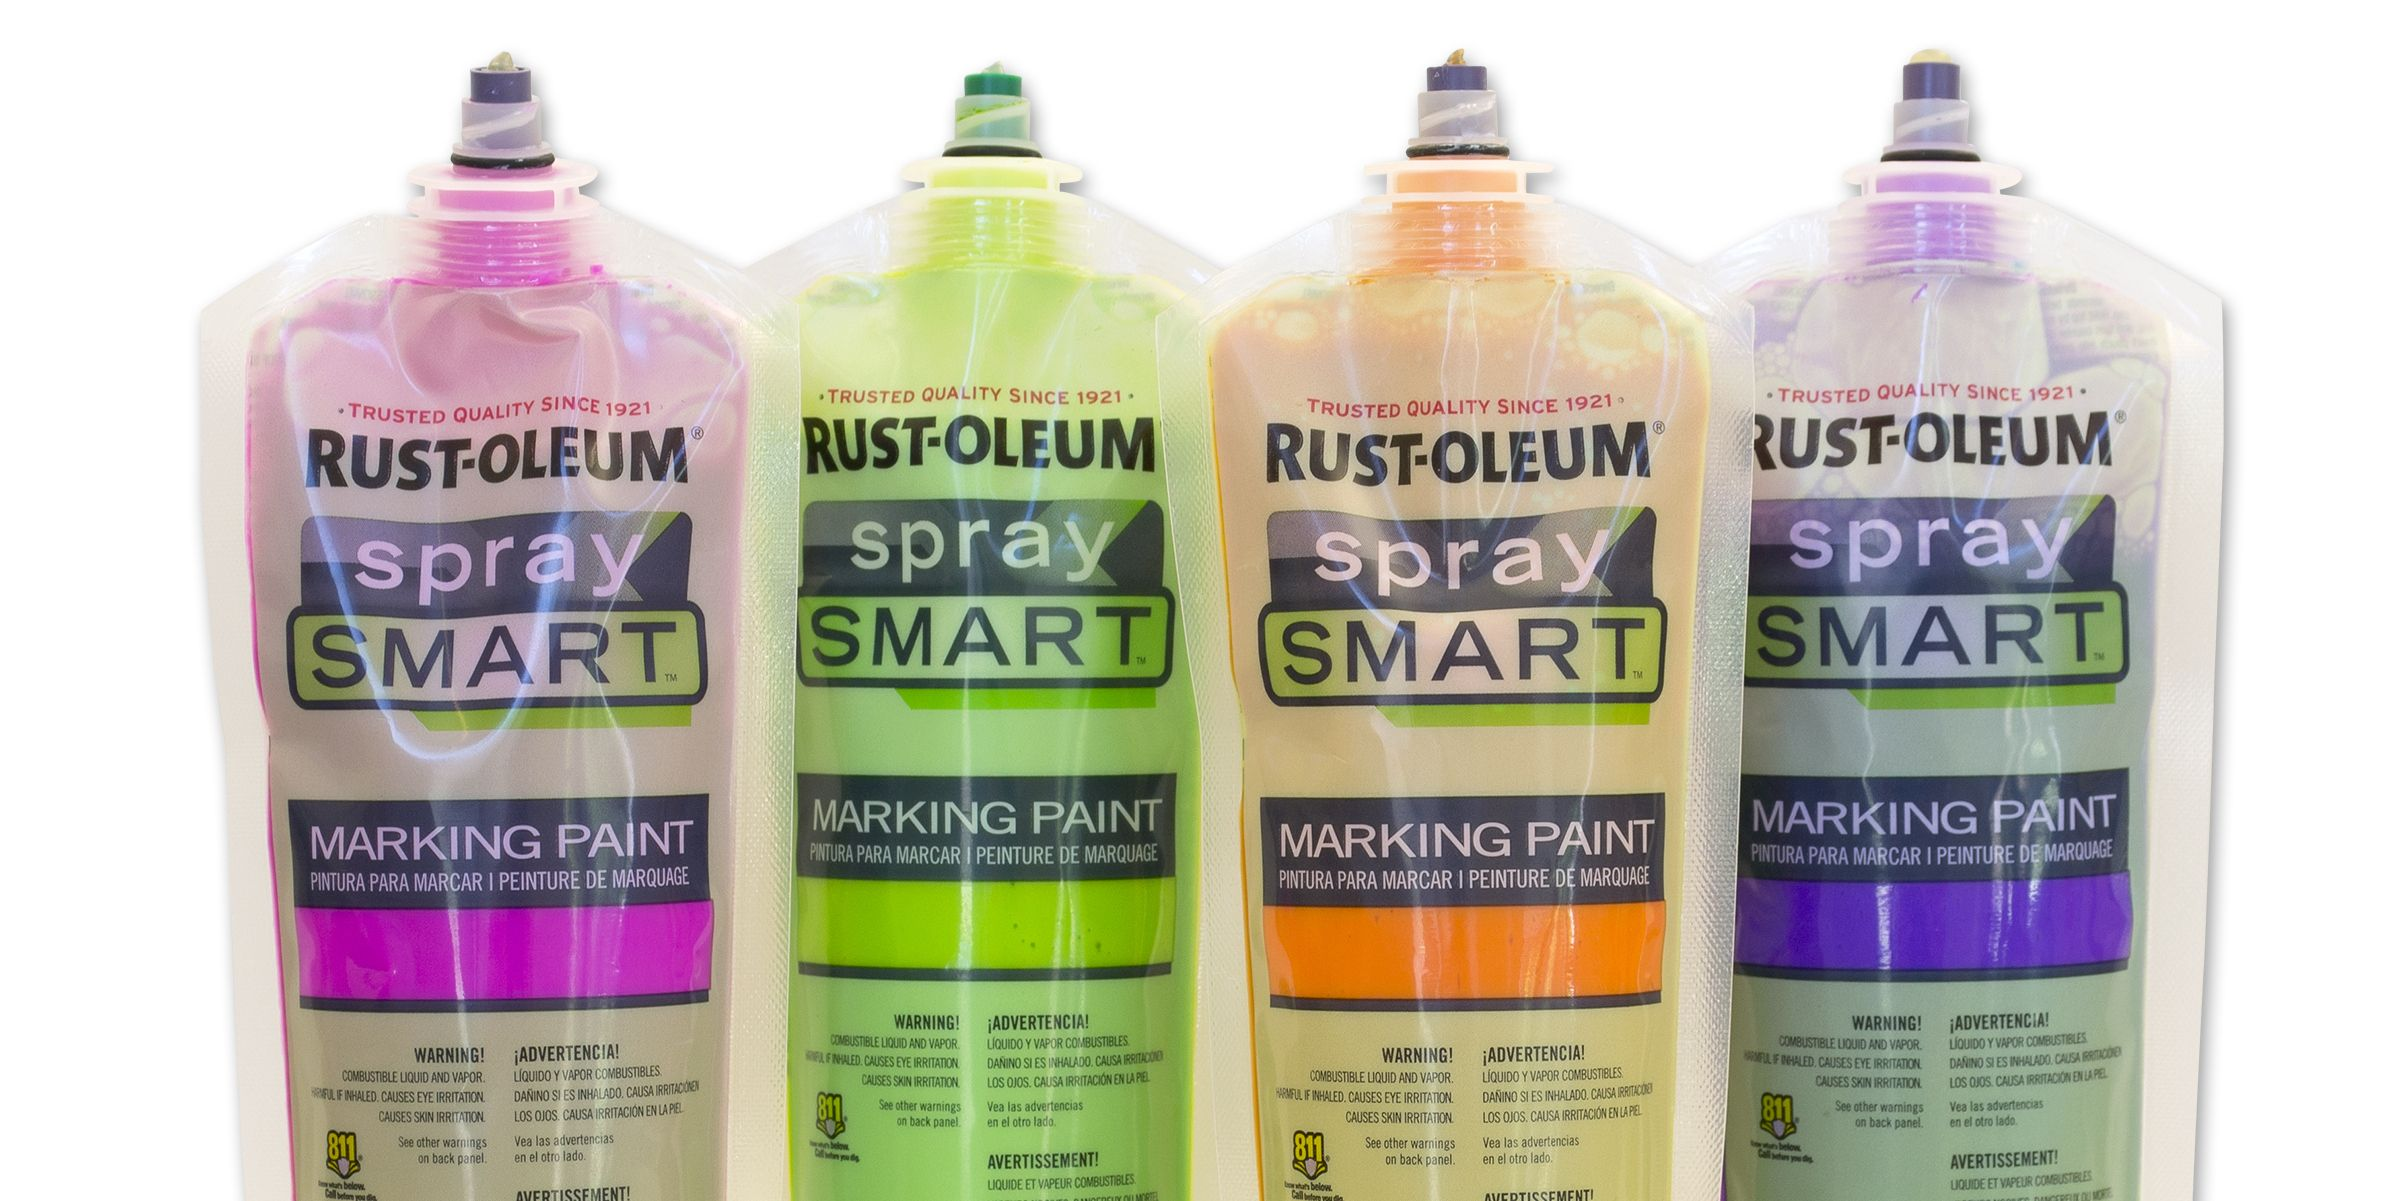 Rust-Oleum® SpraySmart™ Marking Paint Pouch - 2016 Gold Award - DuPont Awards for Packaging Innovation